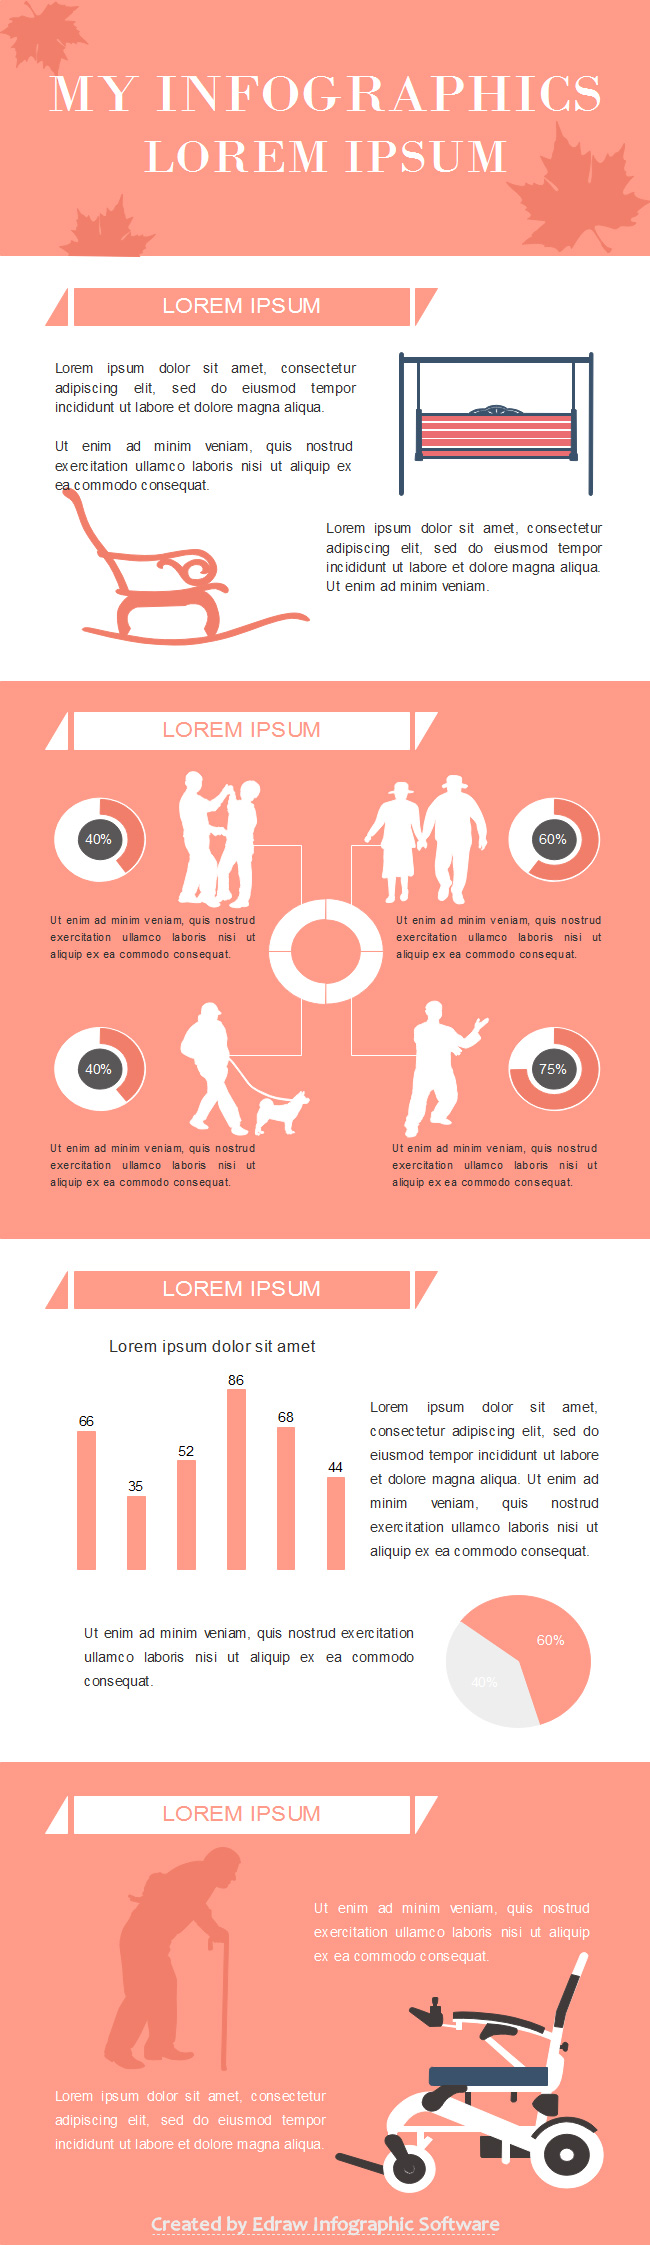 senior-citizen-life-infographic